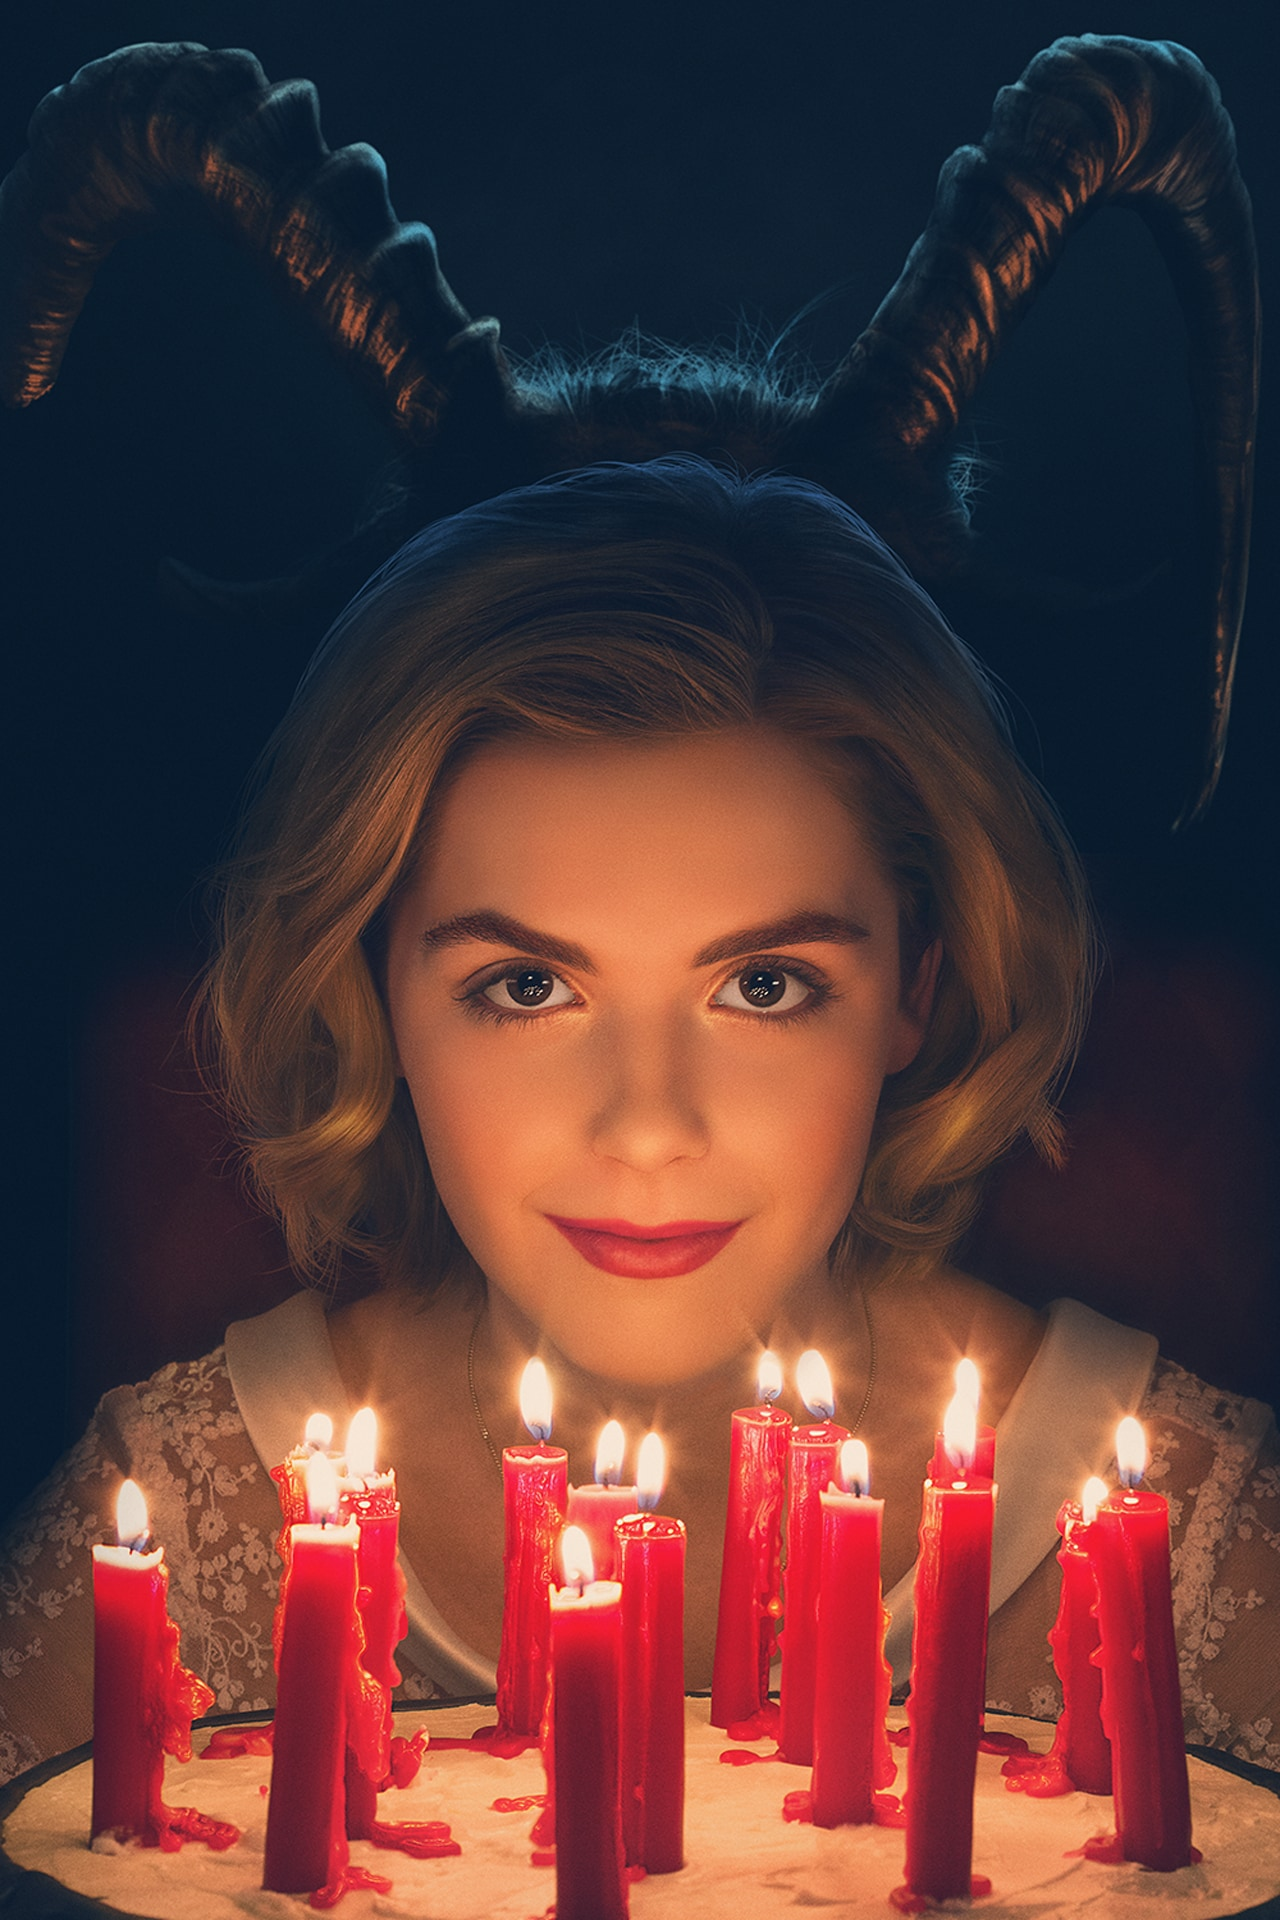 The first teaser for The Chilling Adventures of Sabrina is here